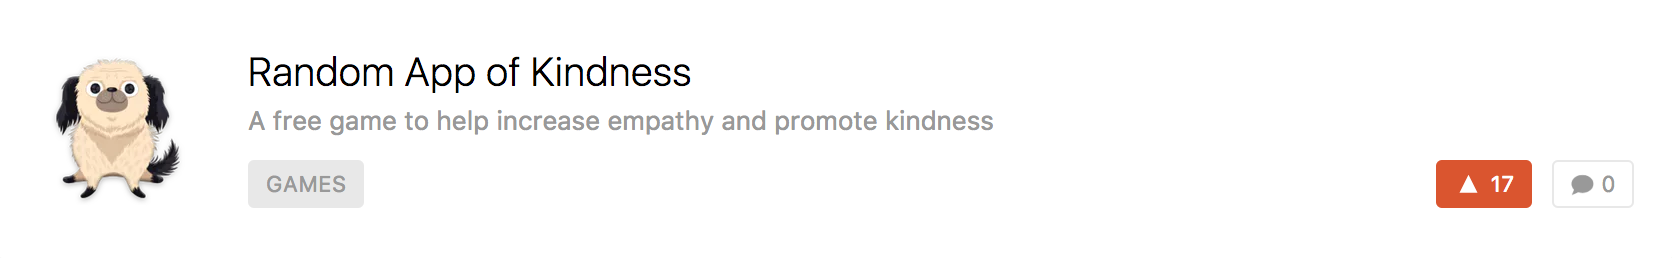 https://www.producthunt.com/posts/random-app-of-kindness